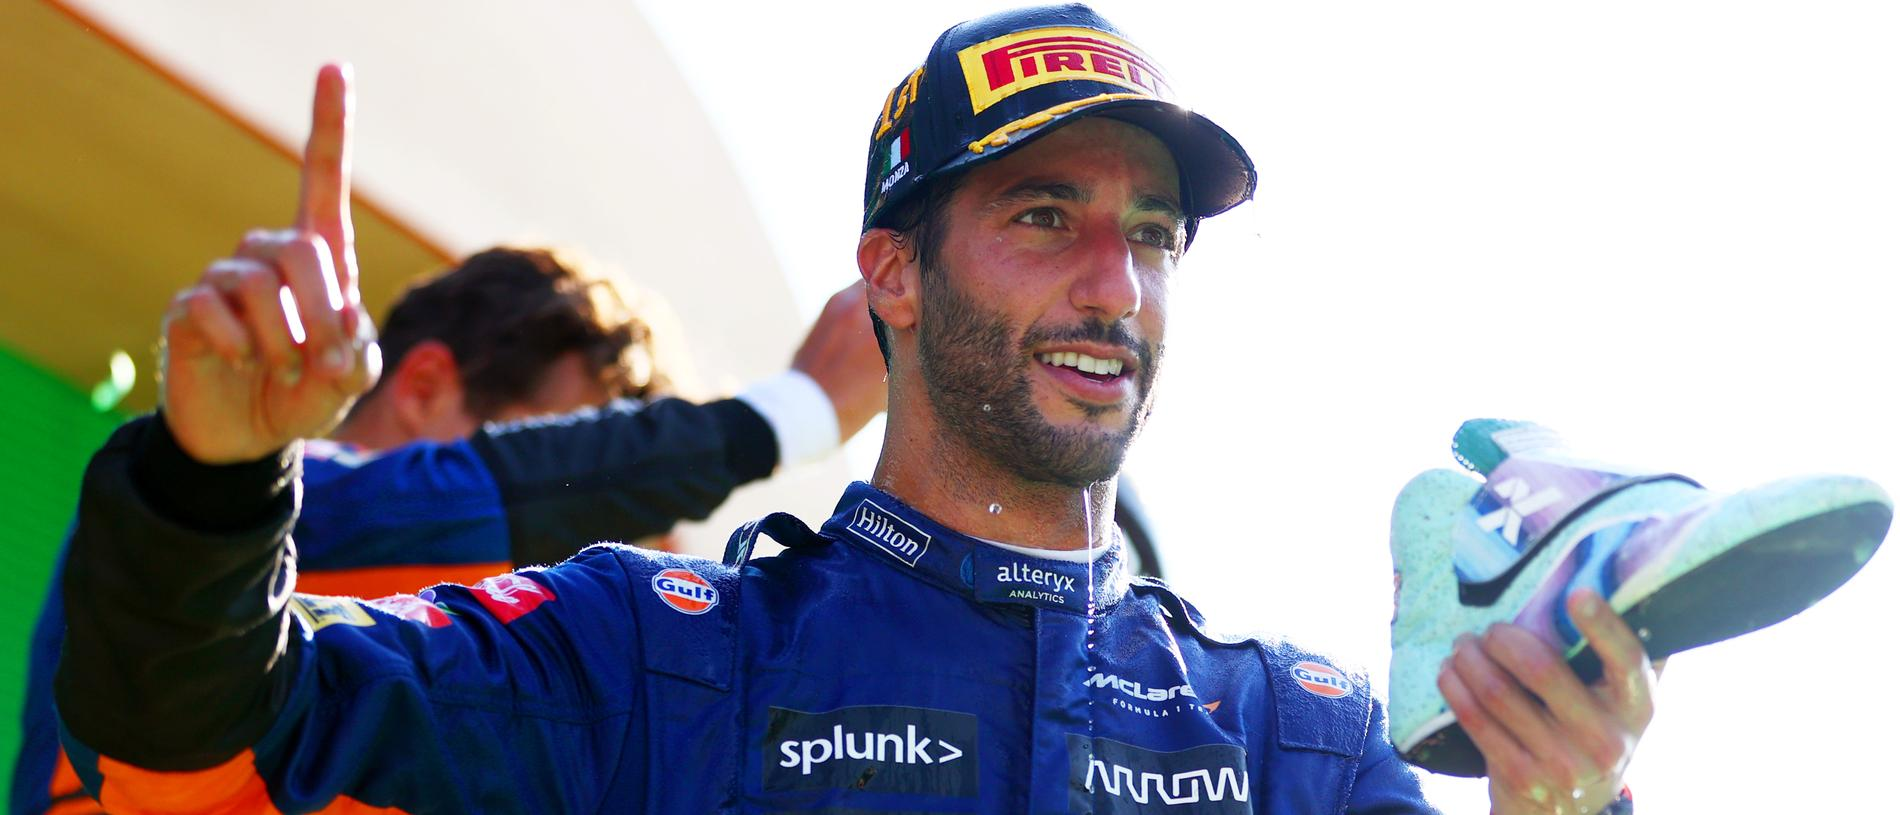 MONZA, ITALY - SEPTEMBER 12:  Daniel Ricciardo of Australia and McLaren celebrates with a shoey on the podium after winning the F1 Grand Prix of Italy at Autodromo di Monza on September 12, 2021 in Monza, Italy. (Photo by Dan Istitene - Formula 1/Formula 1 via Getty Images)